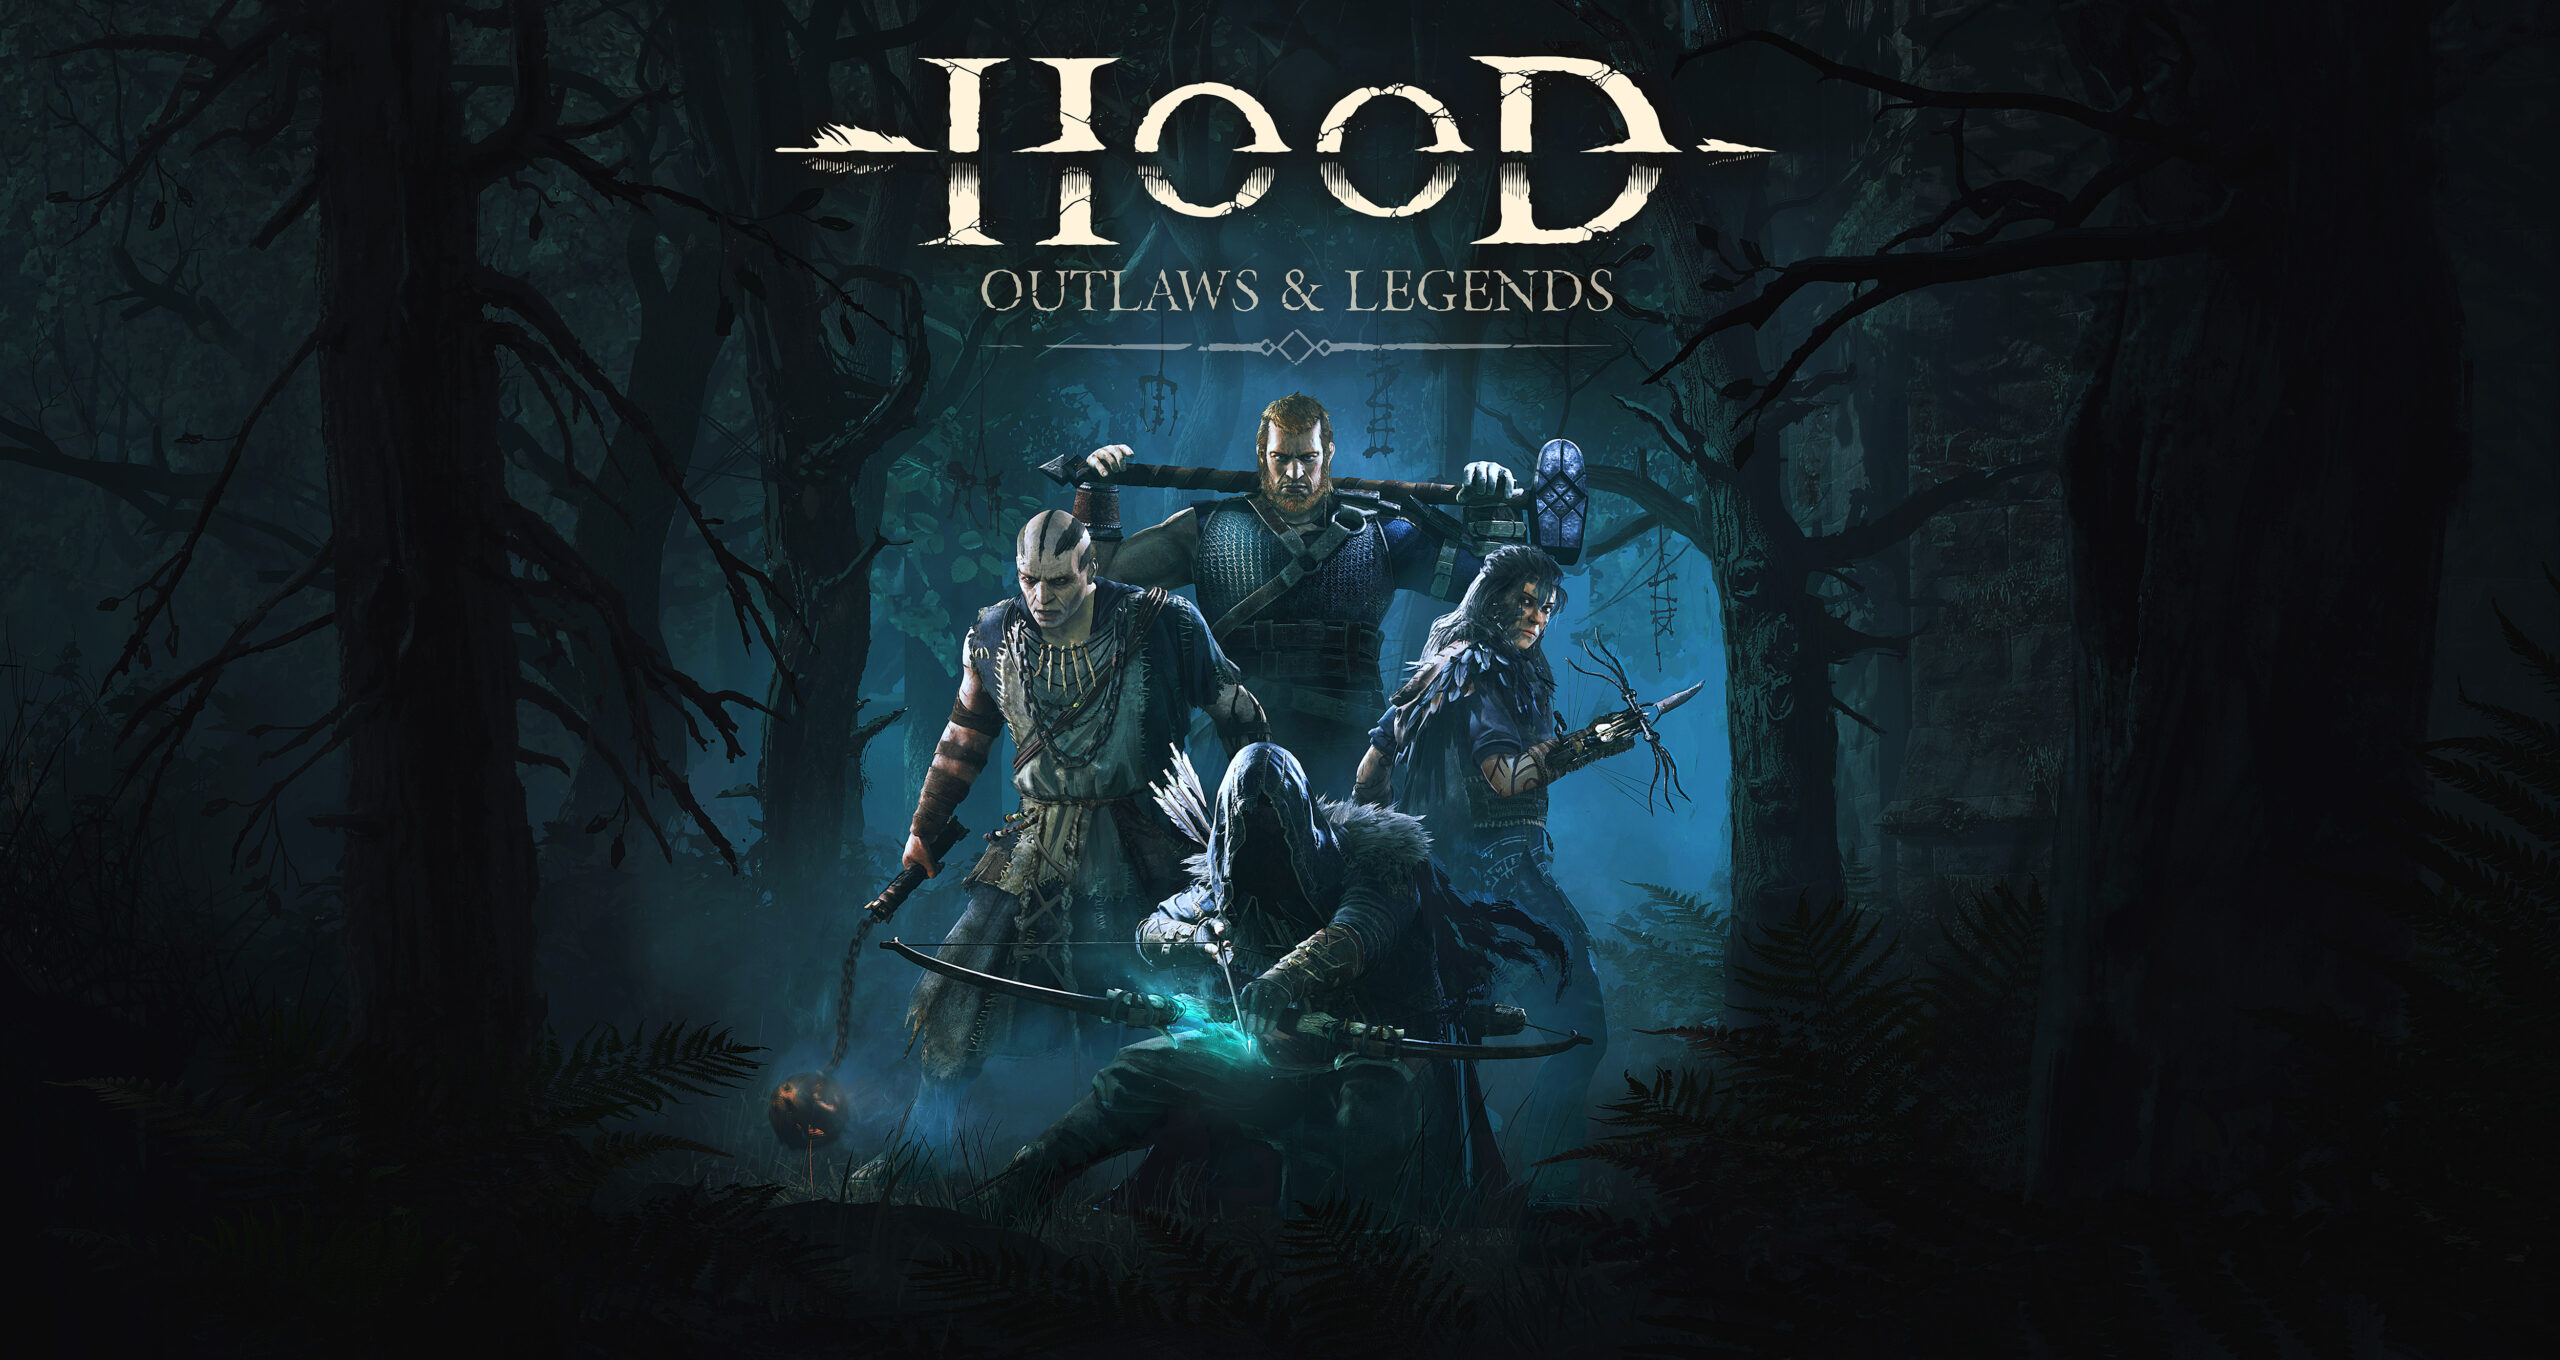 Hood Outlaws and Legends Key Art